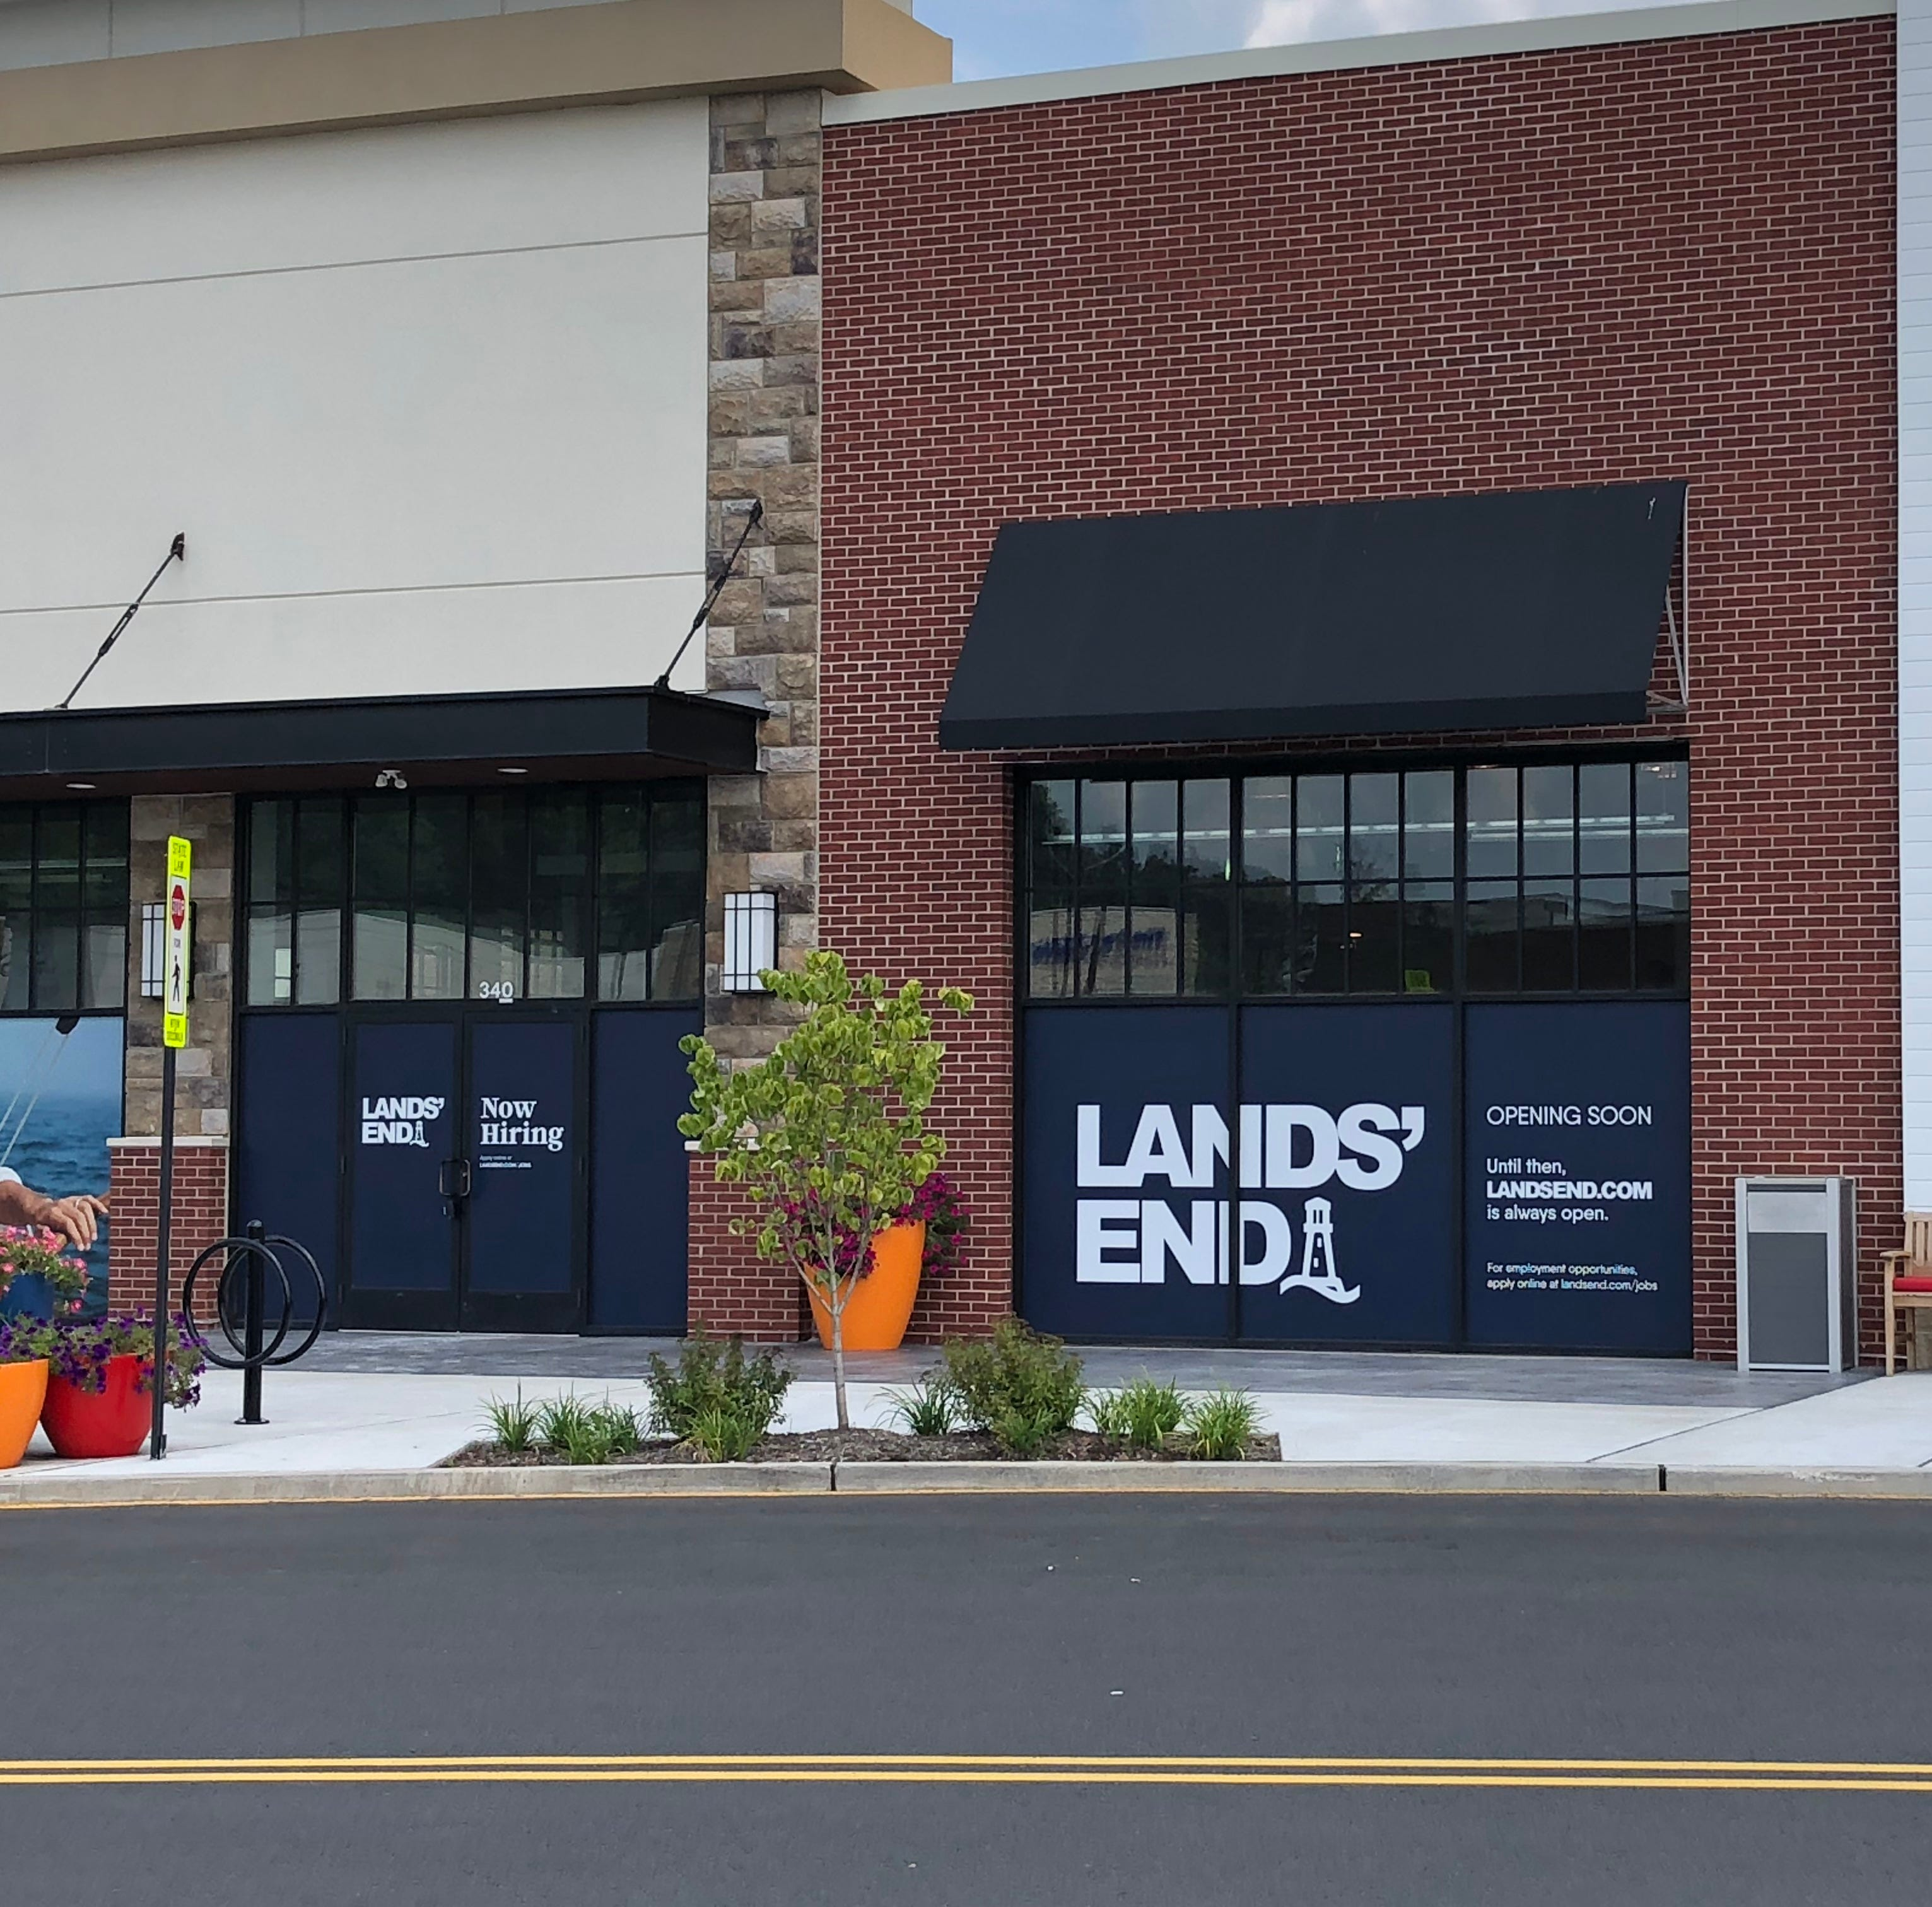 Lands' End, Frutta Bowls coming to Chimney Rock Crossing in Bridgewater